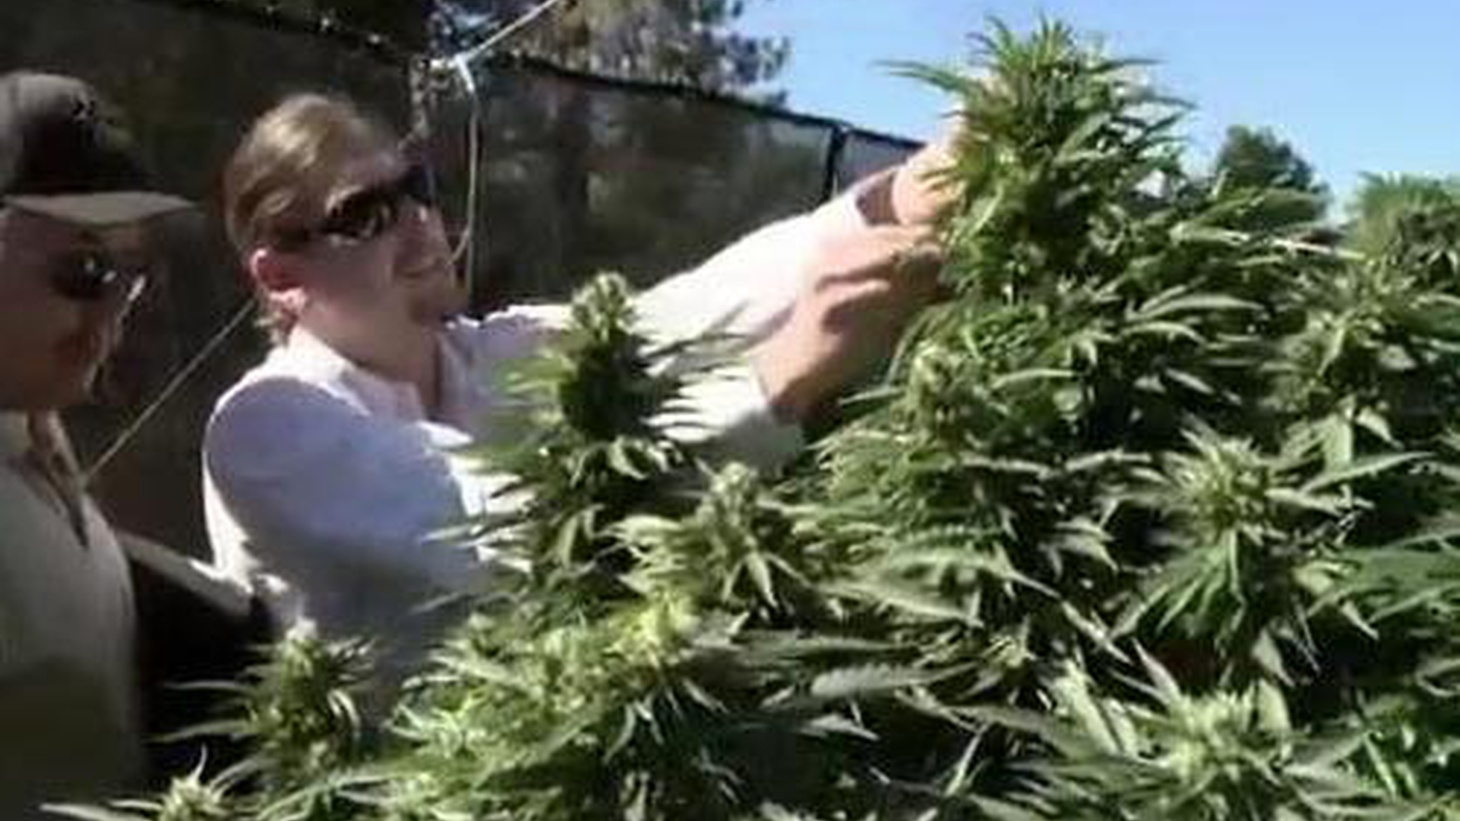 In Mendocino County, federal agents have raided a medical marijuana farm that's legal under state law. Also, Billy Chrystal and the Oscars, and Italy's teetering economy.